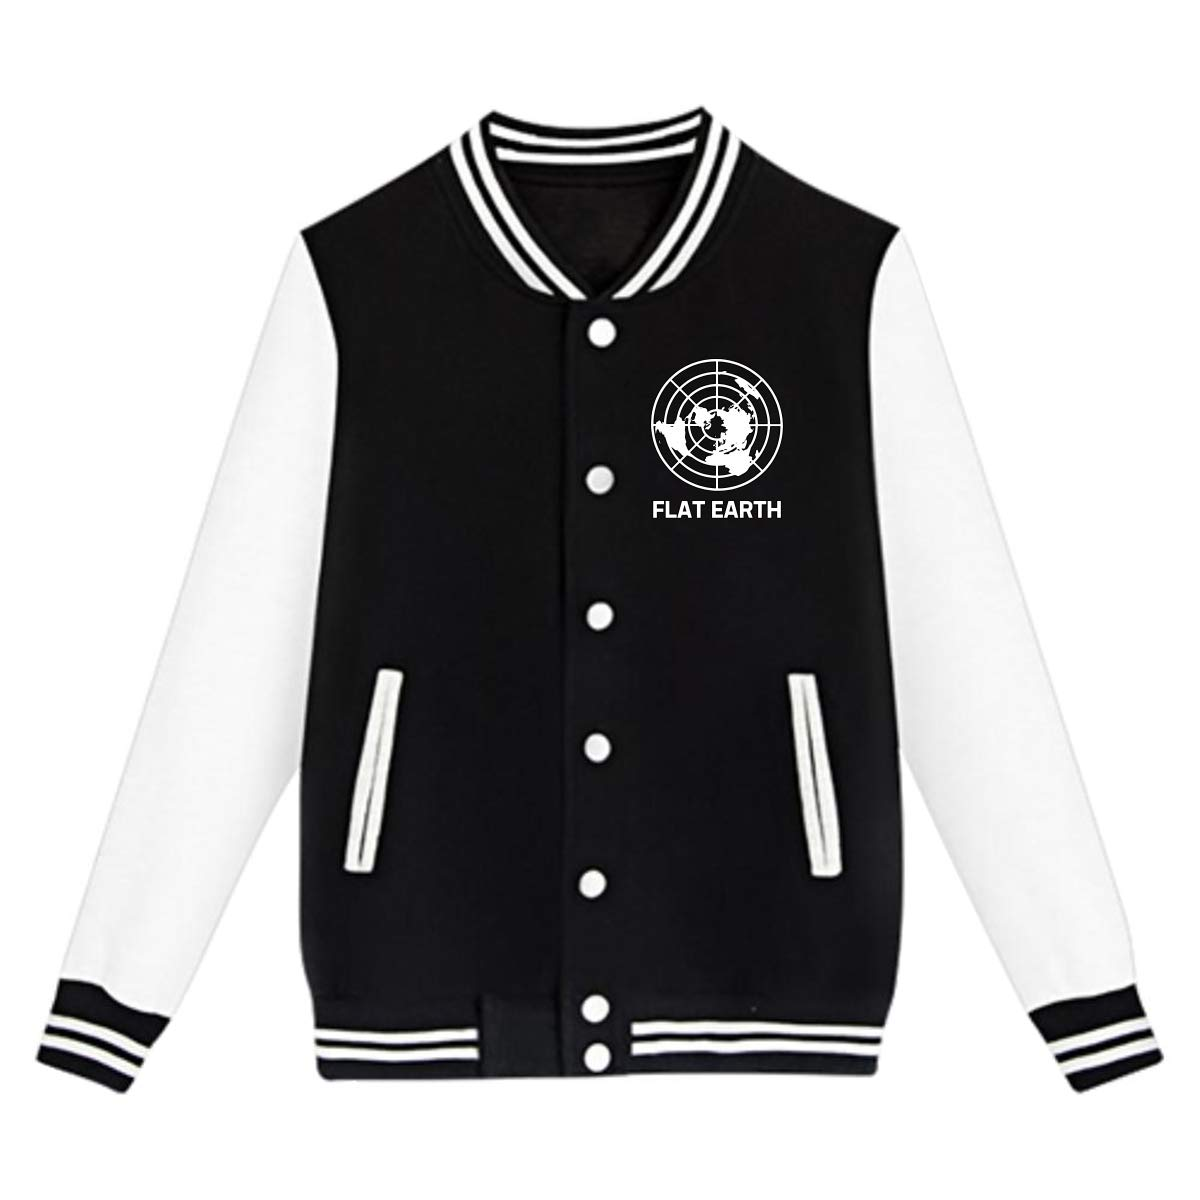 Tina TN Flat Earth Society Teens Boys Girl Varsity Baseball Jacket Long Sleeve Sport Baseball Uniform Jacket Coat Sweater Black